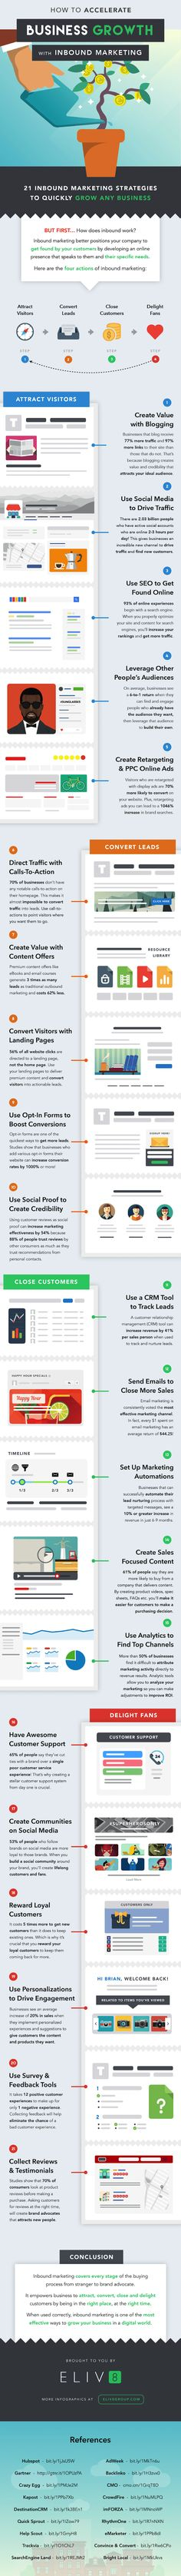 21 Inbound Marketing Strategies to Grow Any Business [Infographic], via @HubSpot